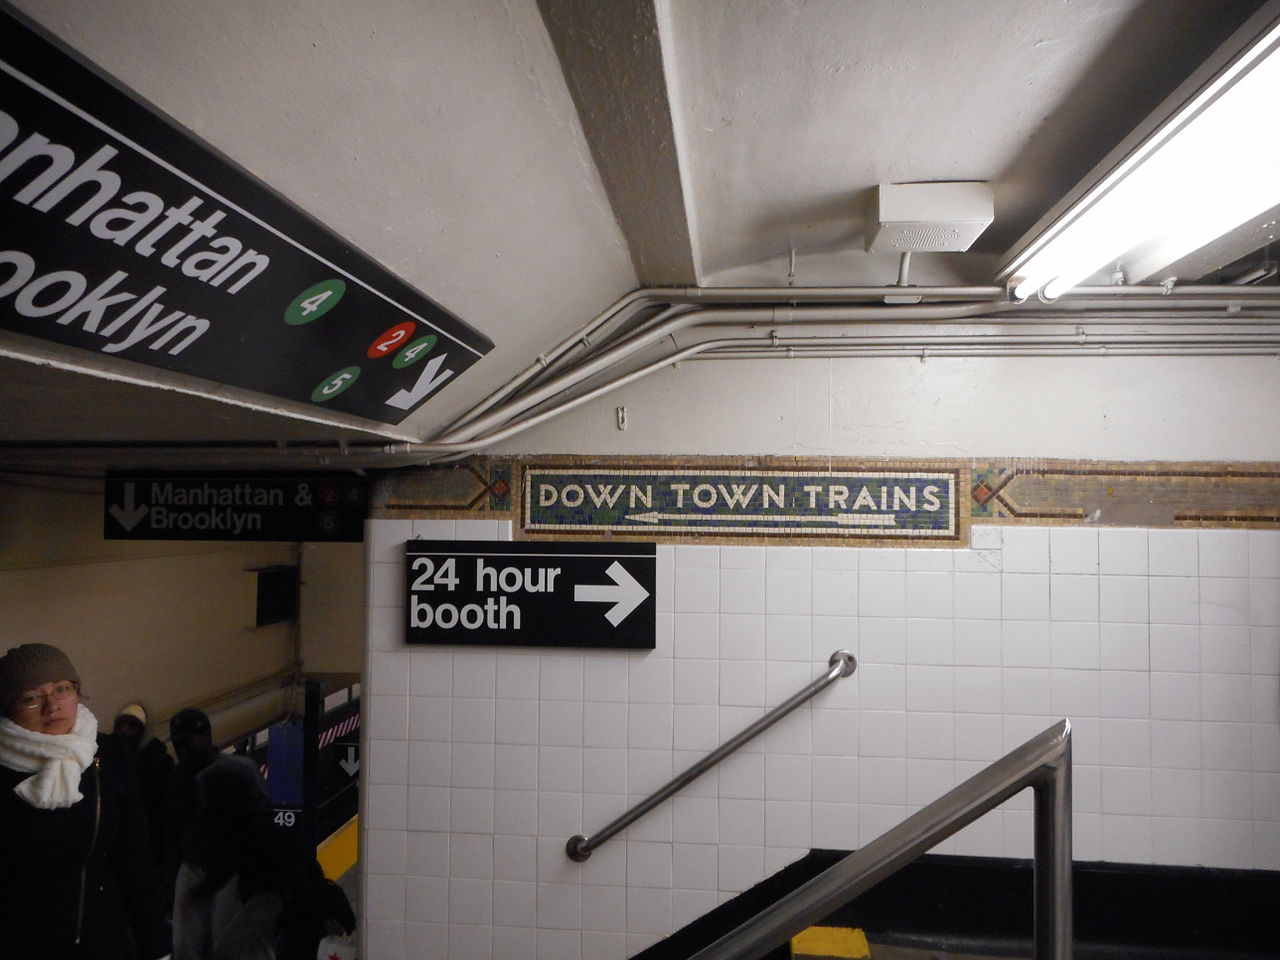 City Line Avenue >> File:149th Street - Grand Concourse; Down Town Trains.JPG - Wikimedia Commons